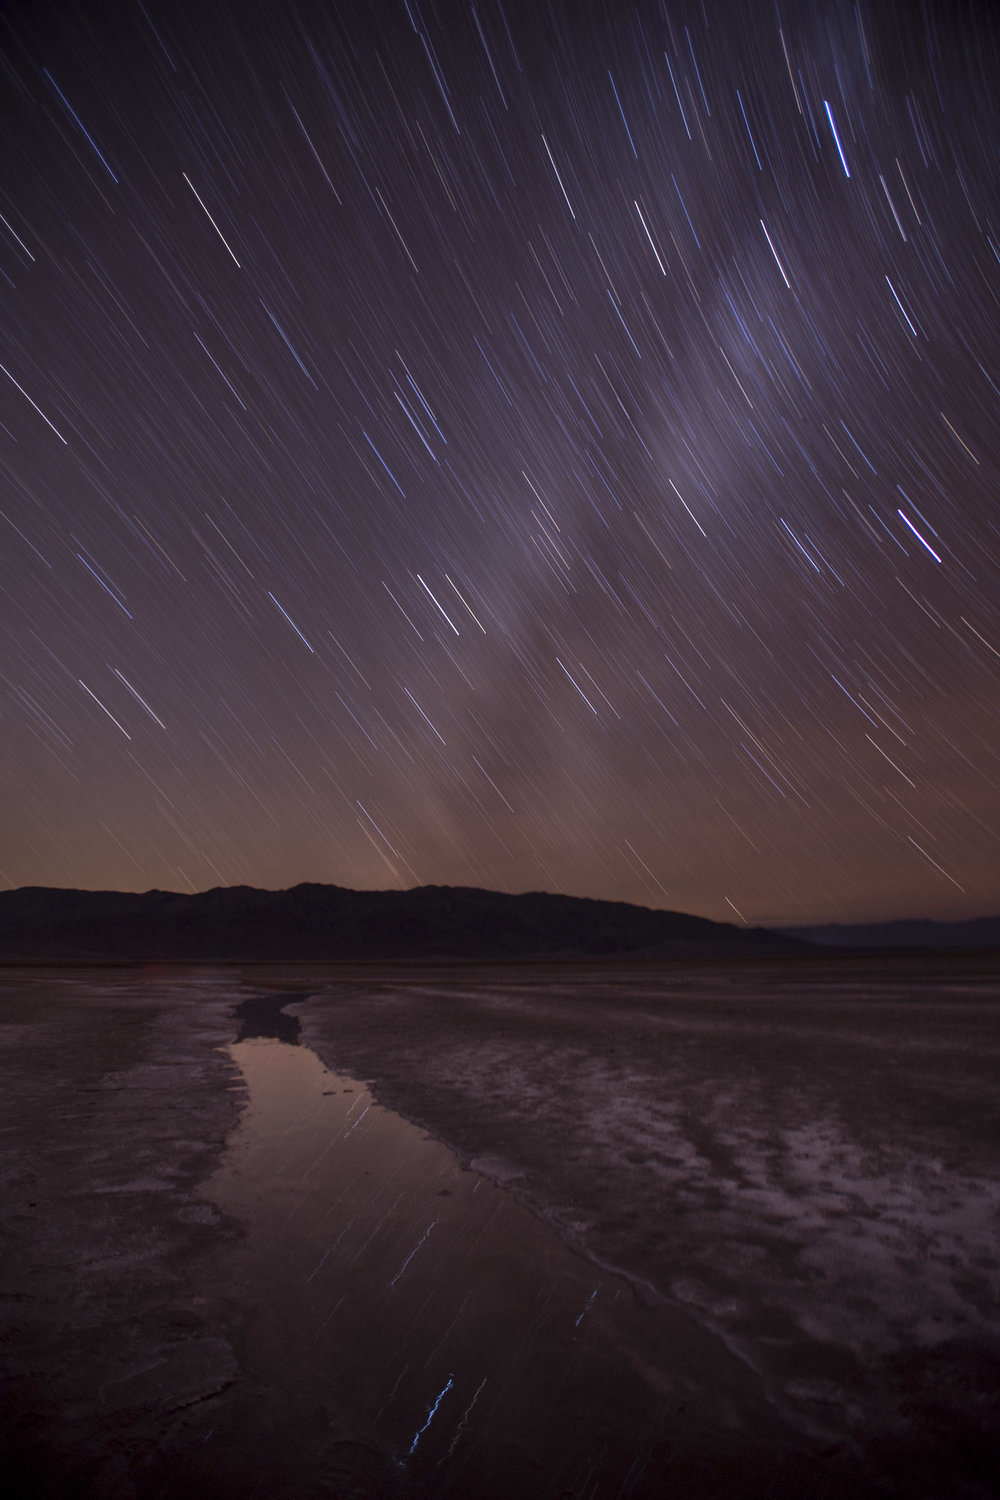 In the very dark skies of Death Valley National Park, I found a bright star in live view and used a  Hoodman HoodLoupe  to fine-tune the focus manually. Nikon D5 with a Nikon 17-28mm f/2.8 lens. 20 minutes, f/2.8, ISO 100.